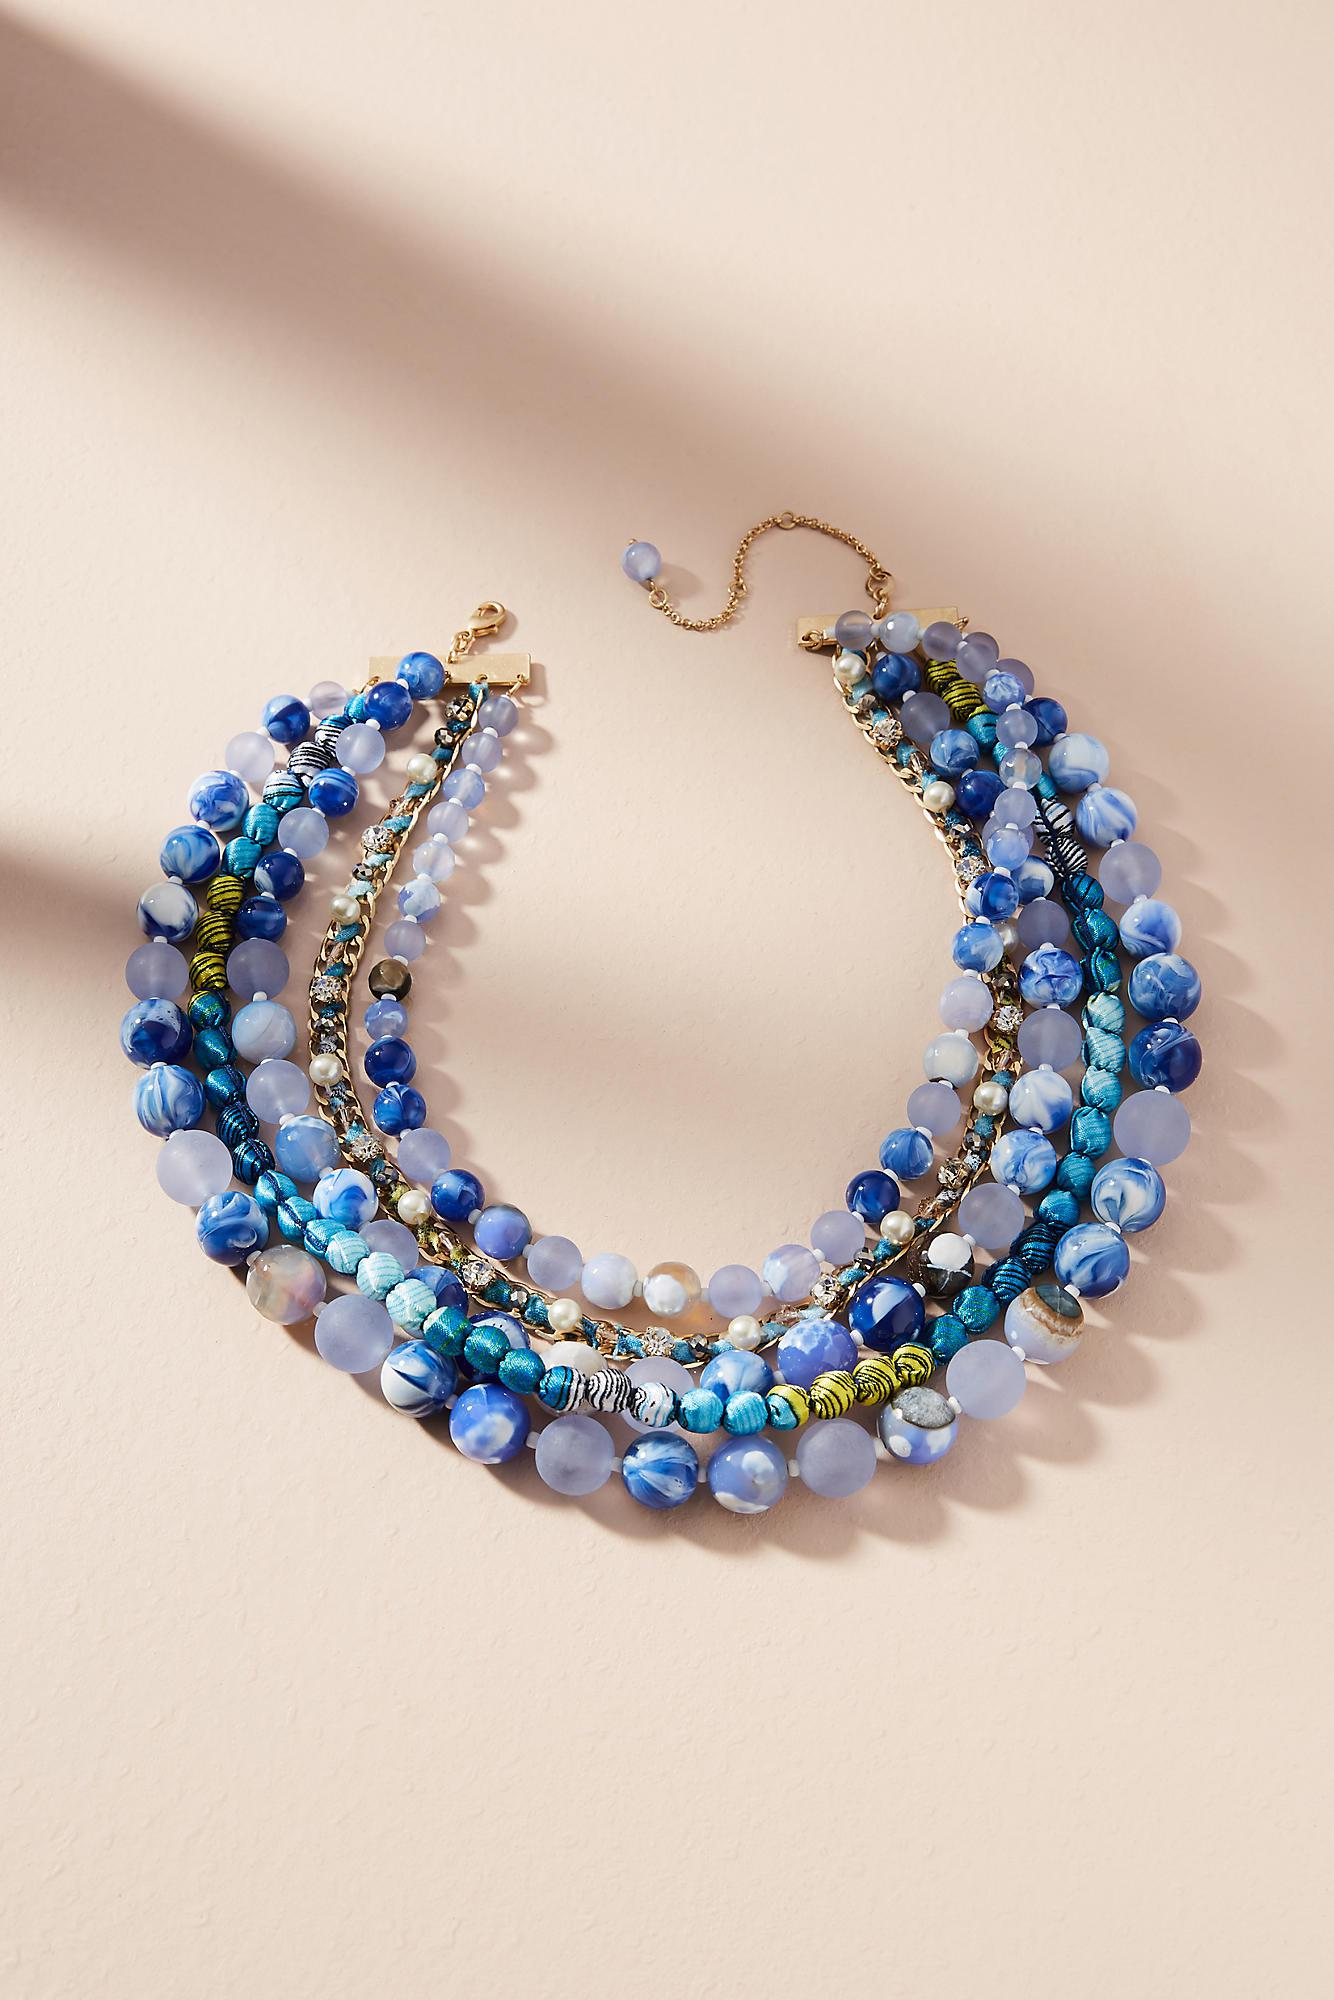 ab52ff04c15e4e Anthropologie Bernice Layered Necklace in Blue - Lyst